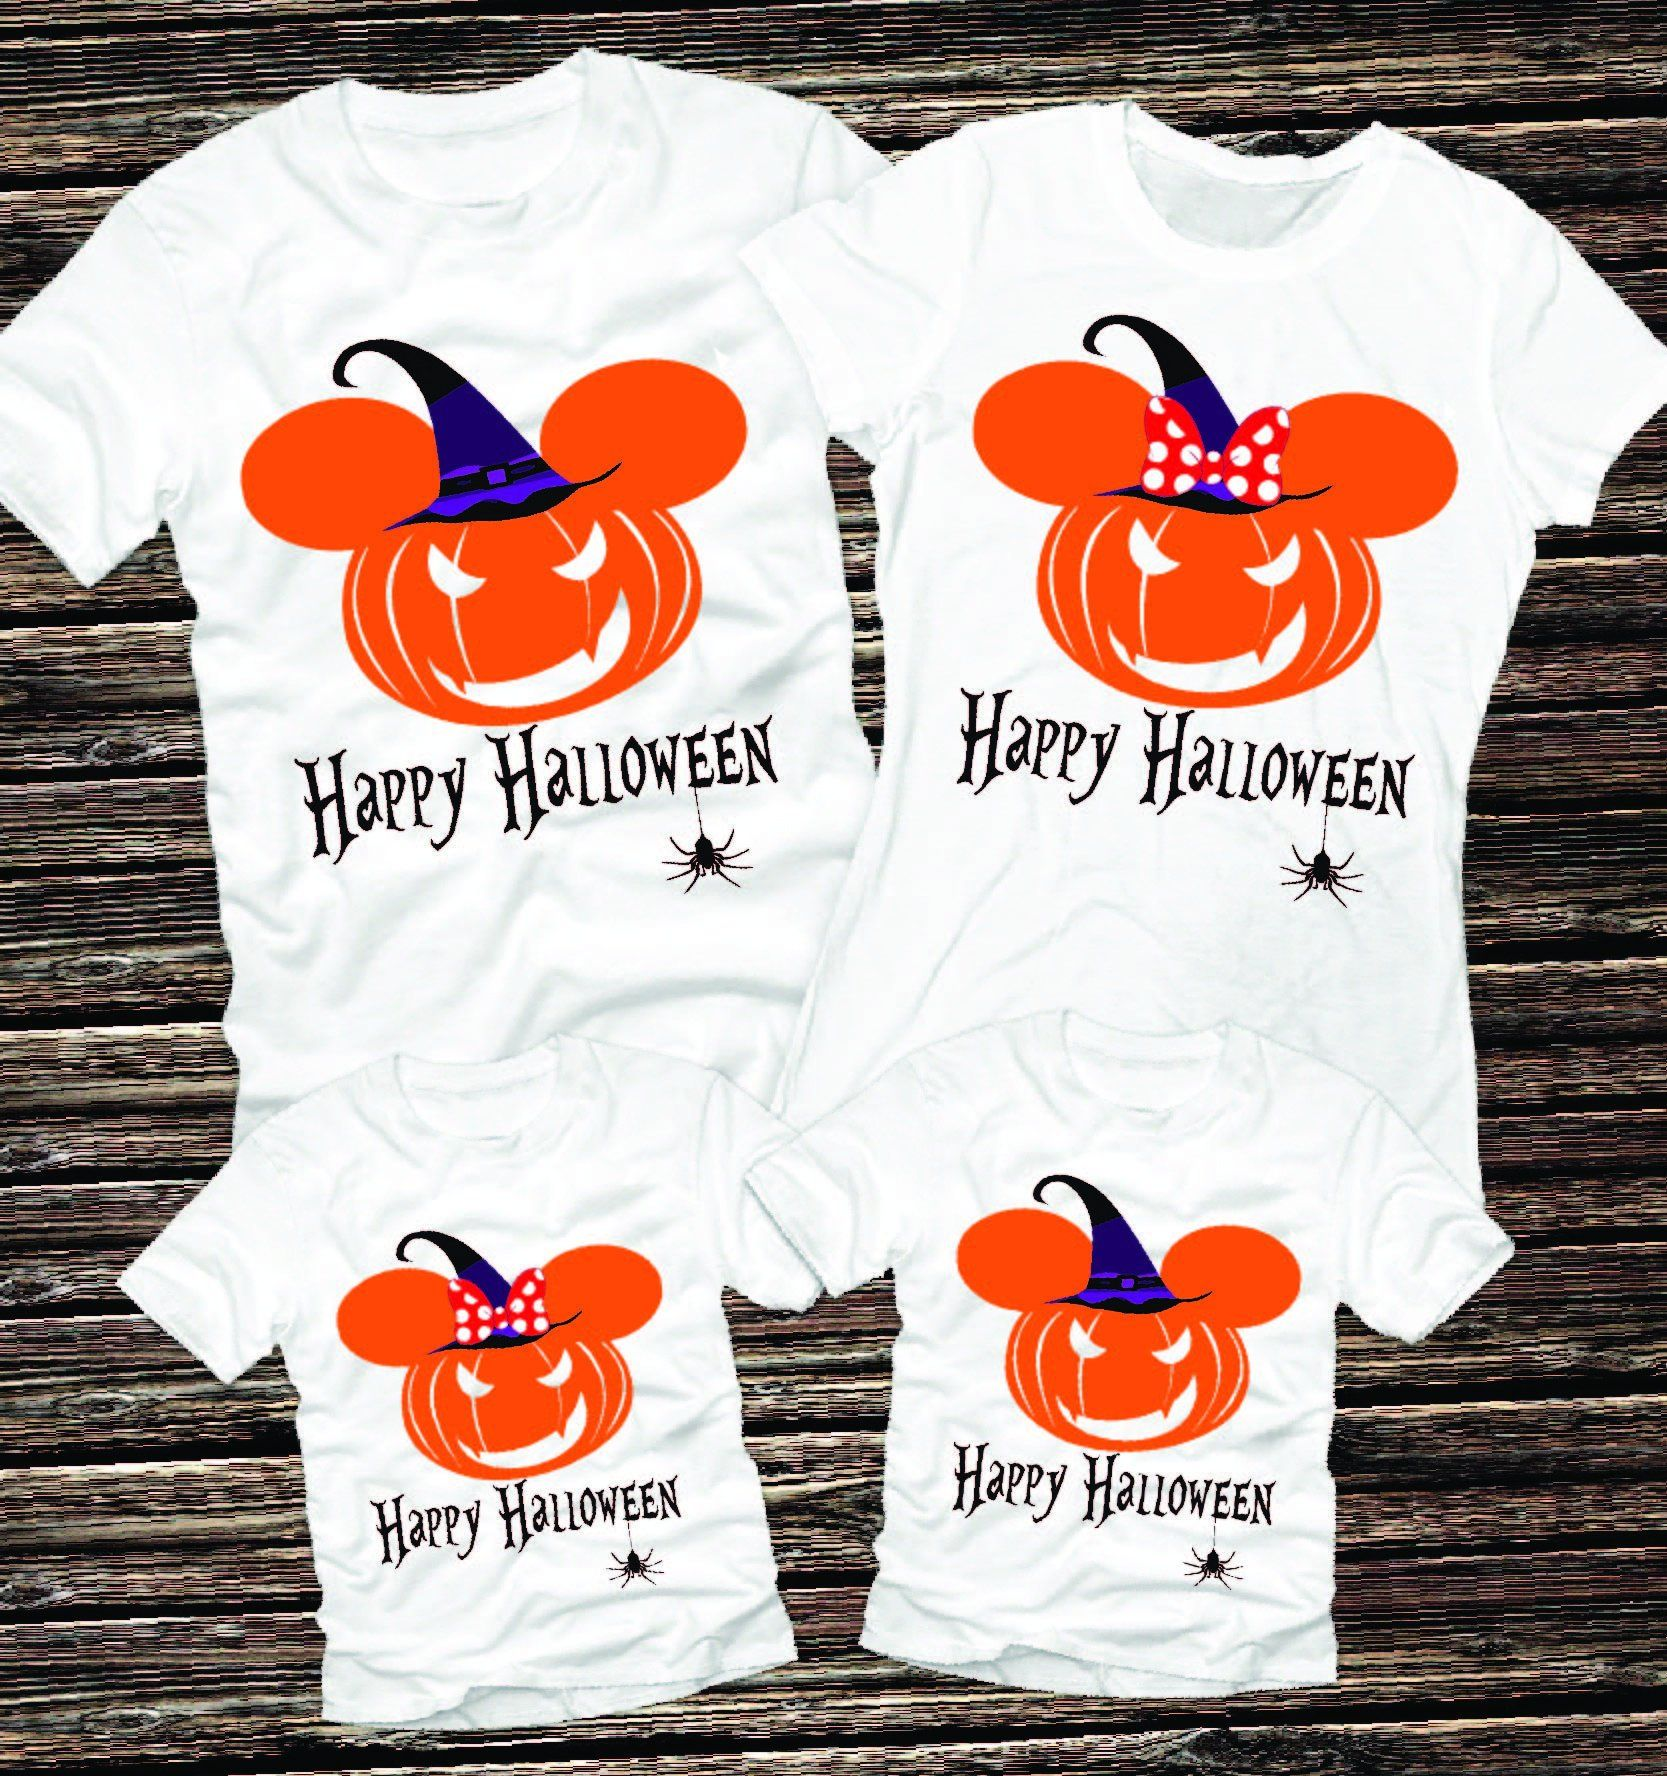 Disney Halloween Shirts Etsy.Disney Pumpkin Shirt Matching Halloween Shirts Disney